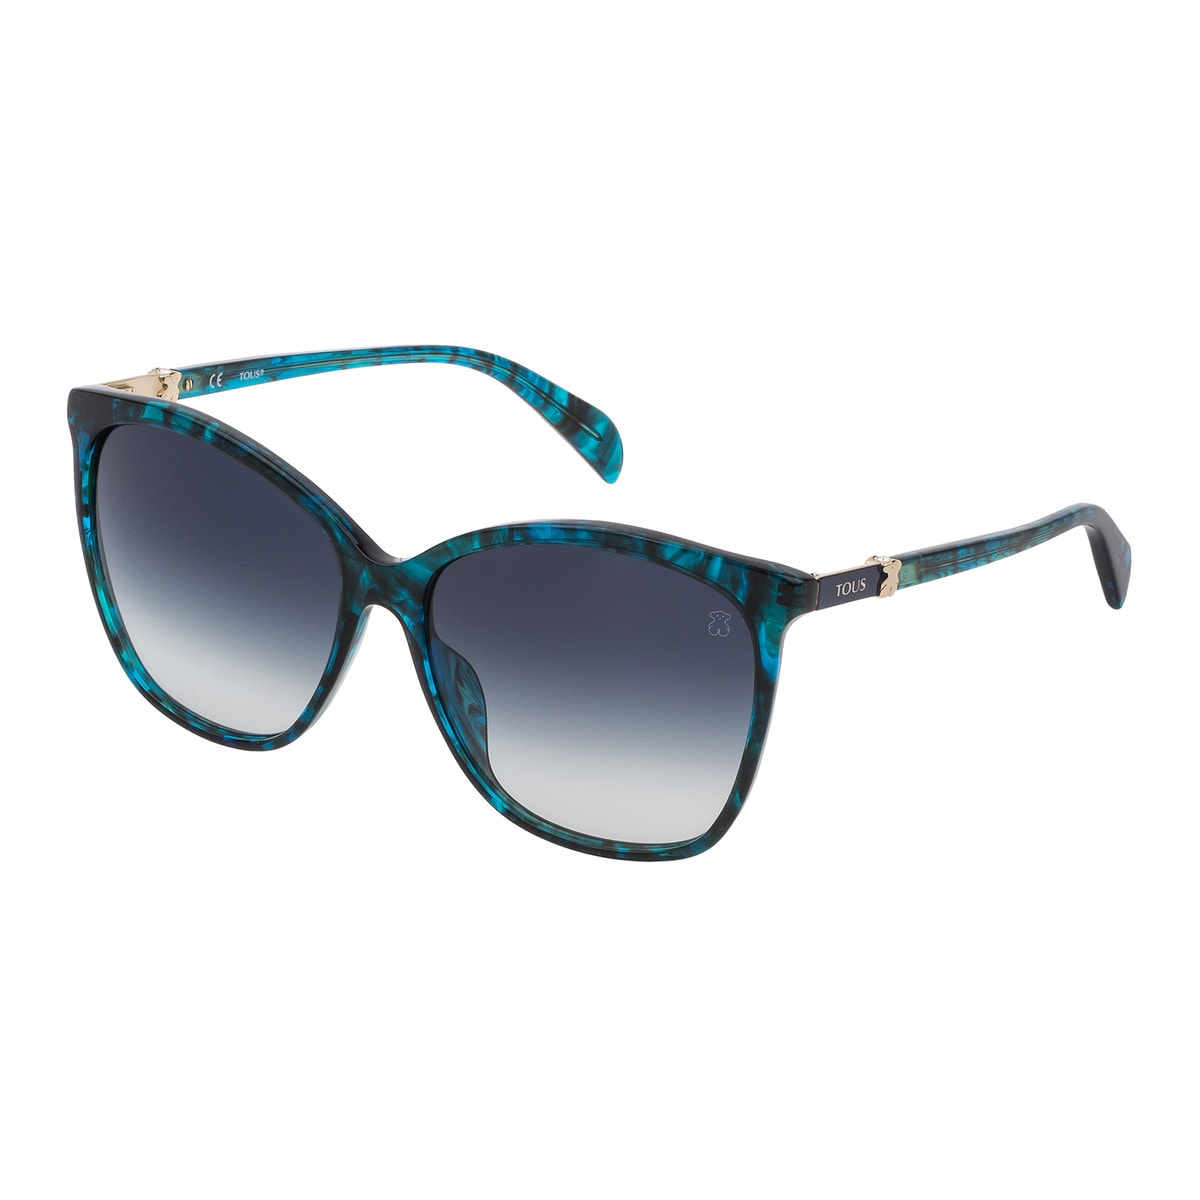 Lentes de sol Classic Gold Bear de Acetato en color azul